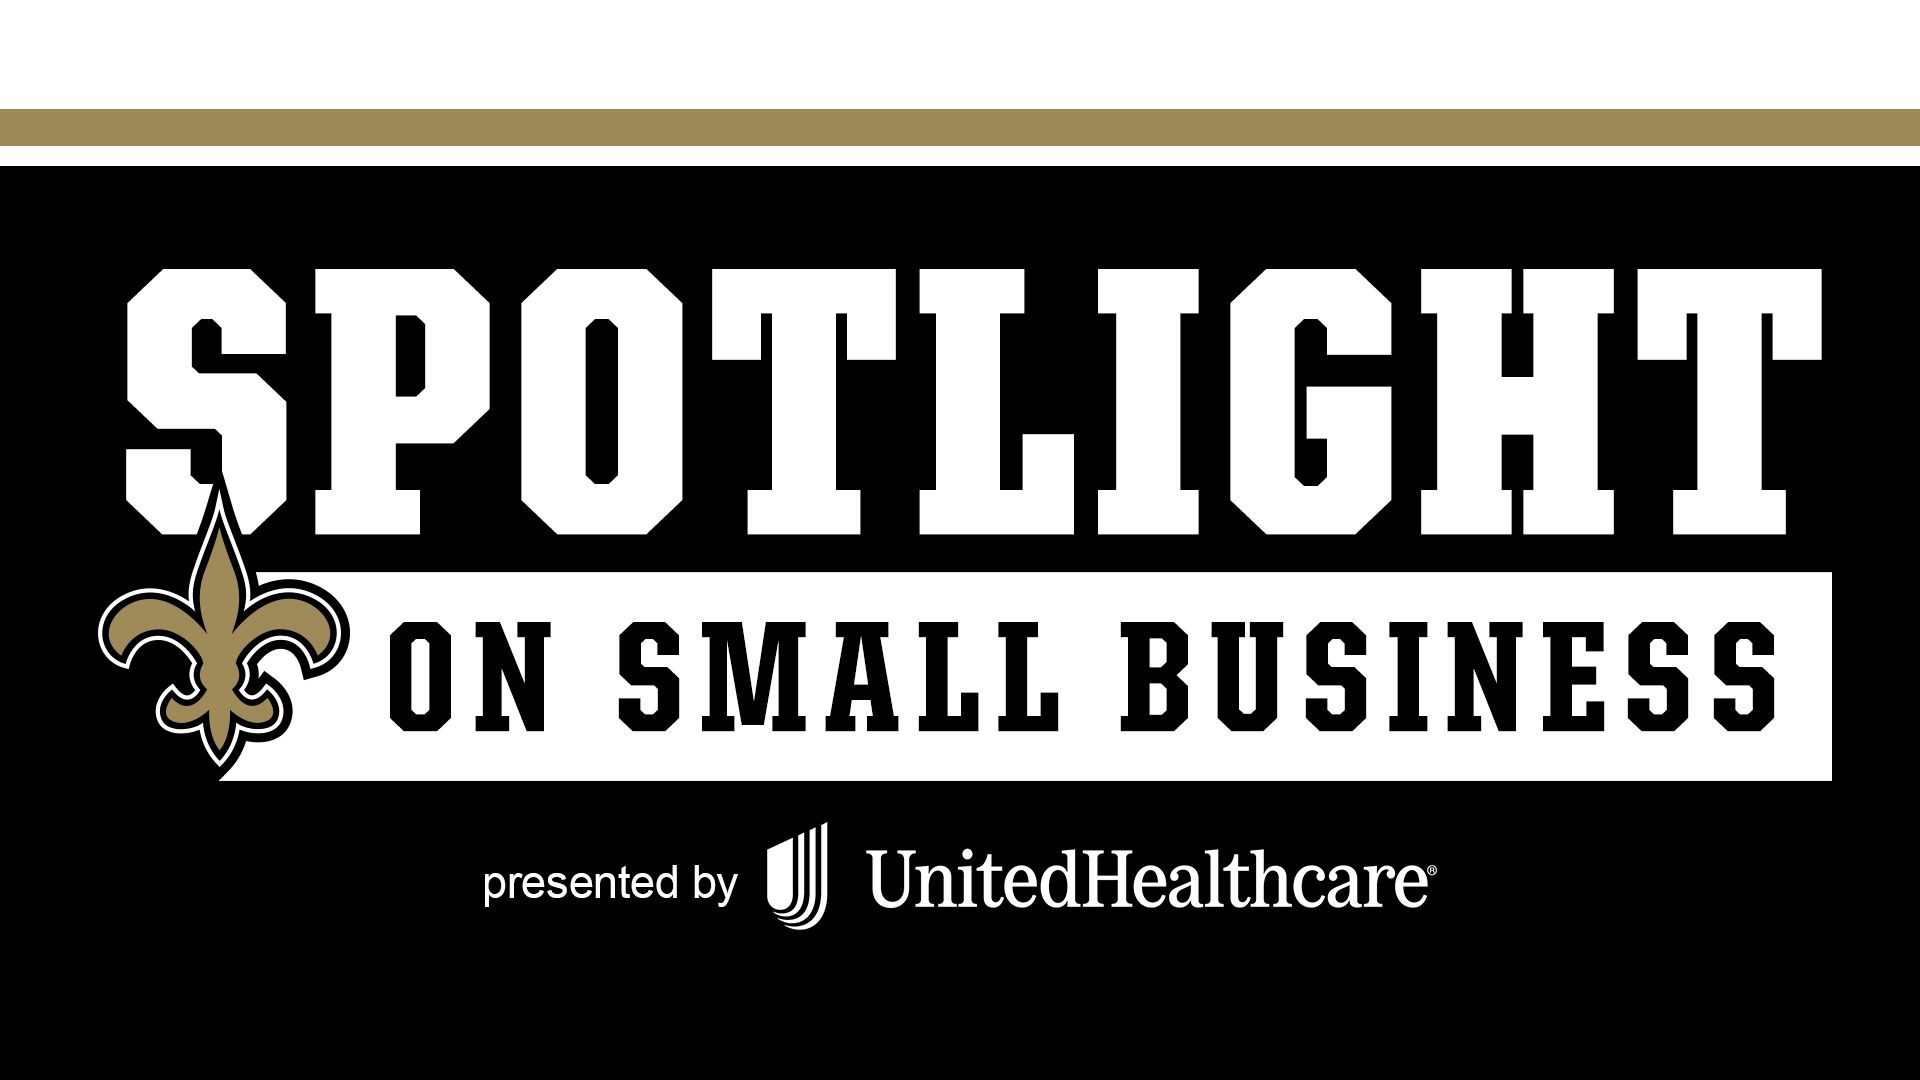 UnitedHealthcare Wants Your Small Business in the Spotlight!